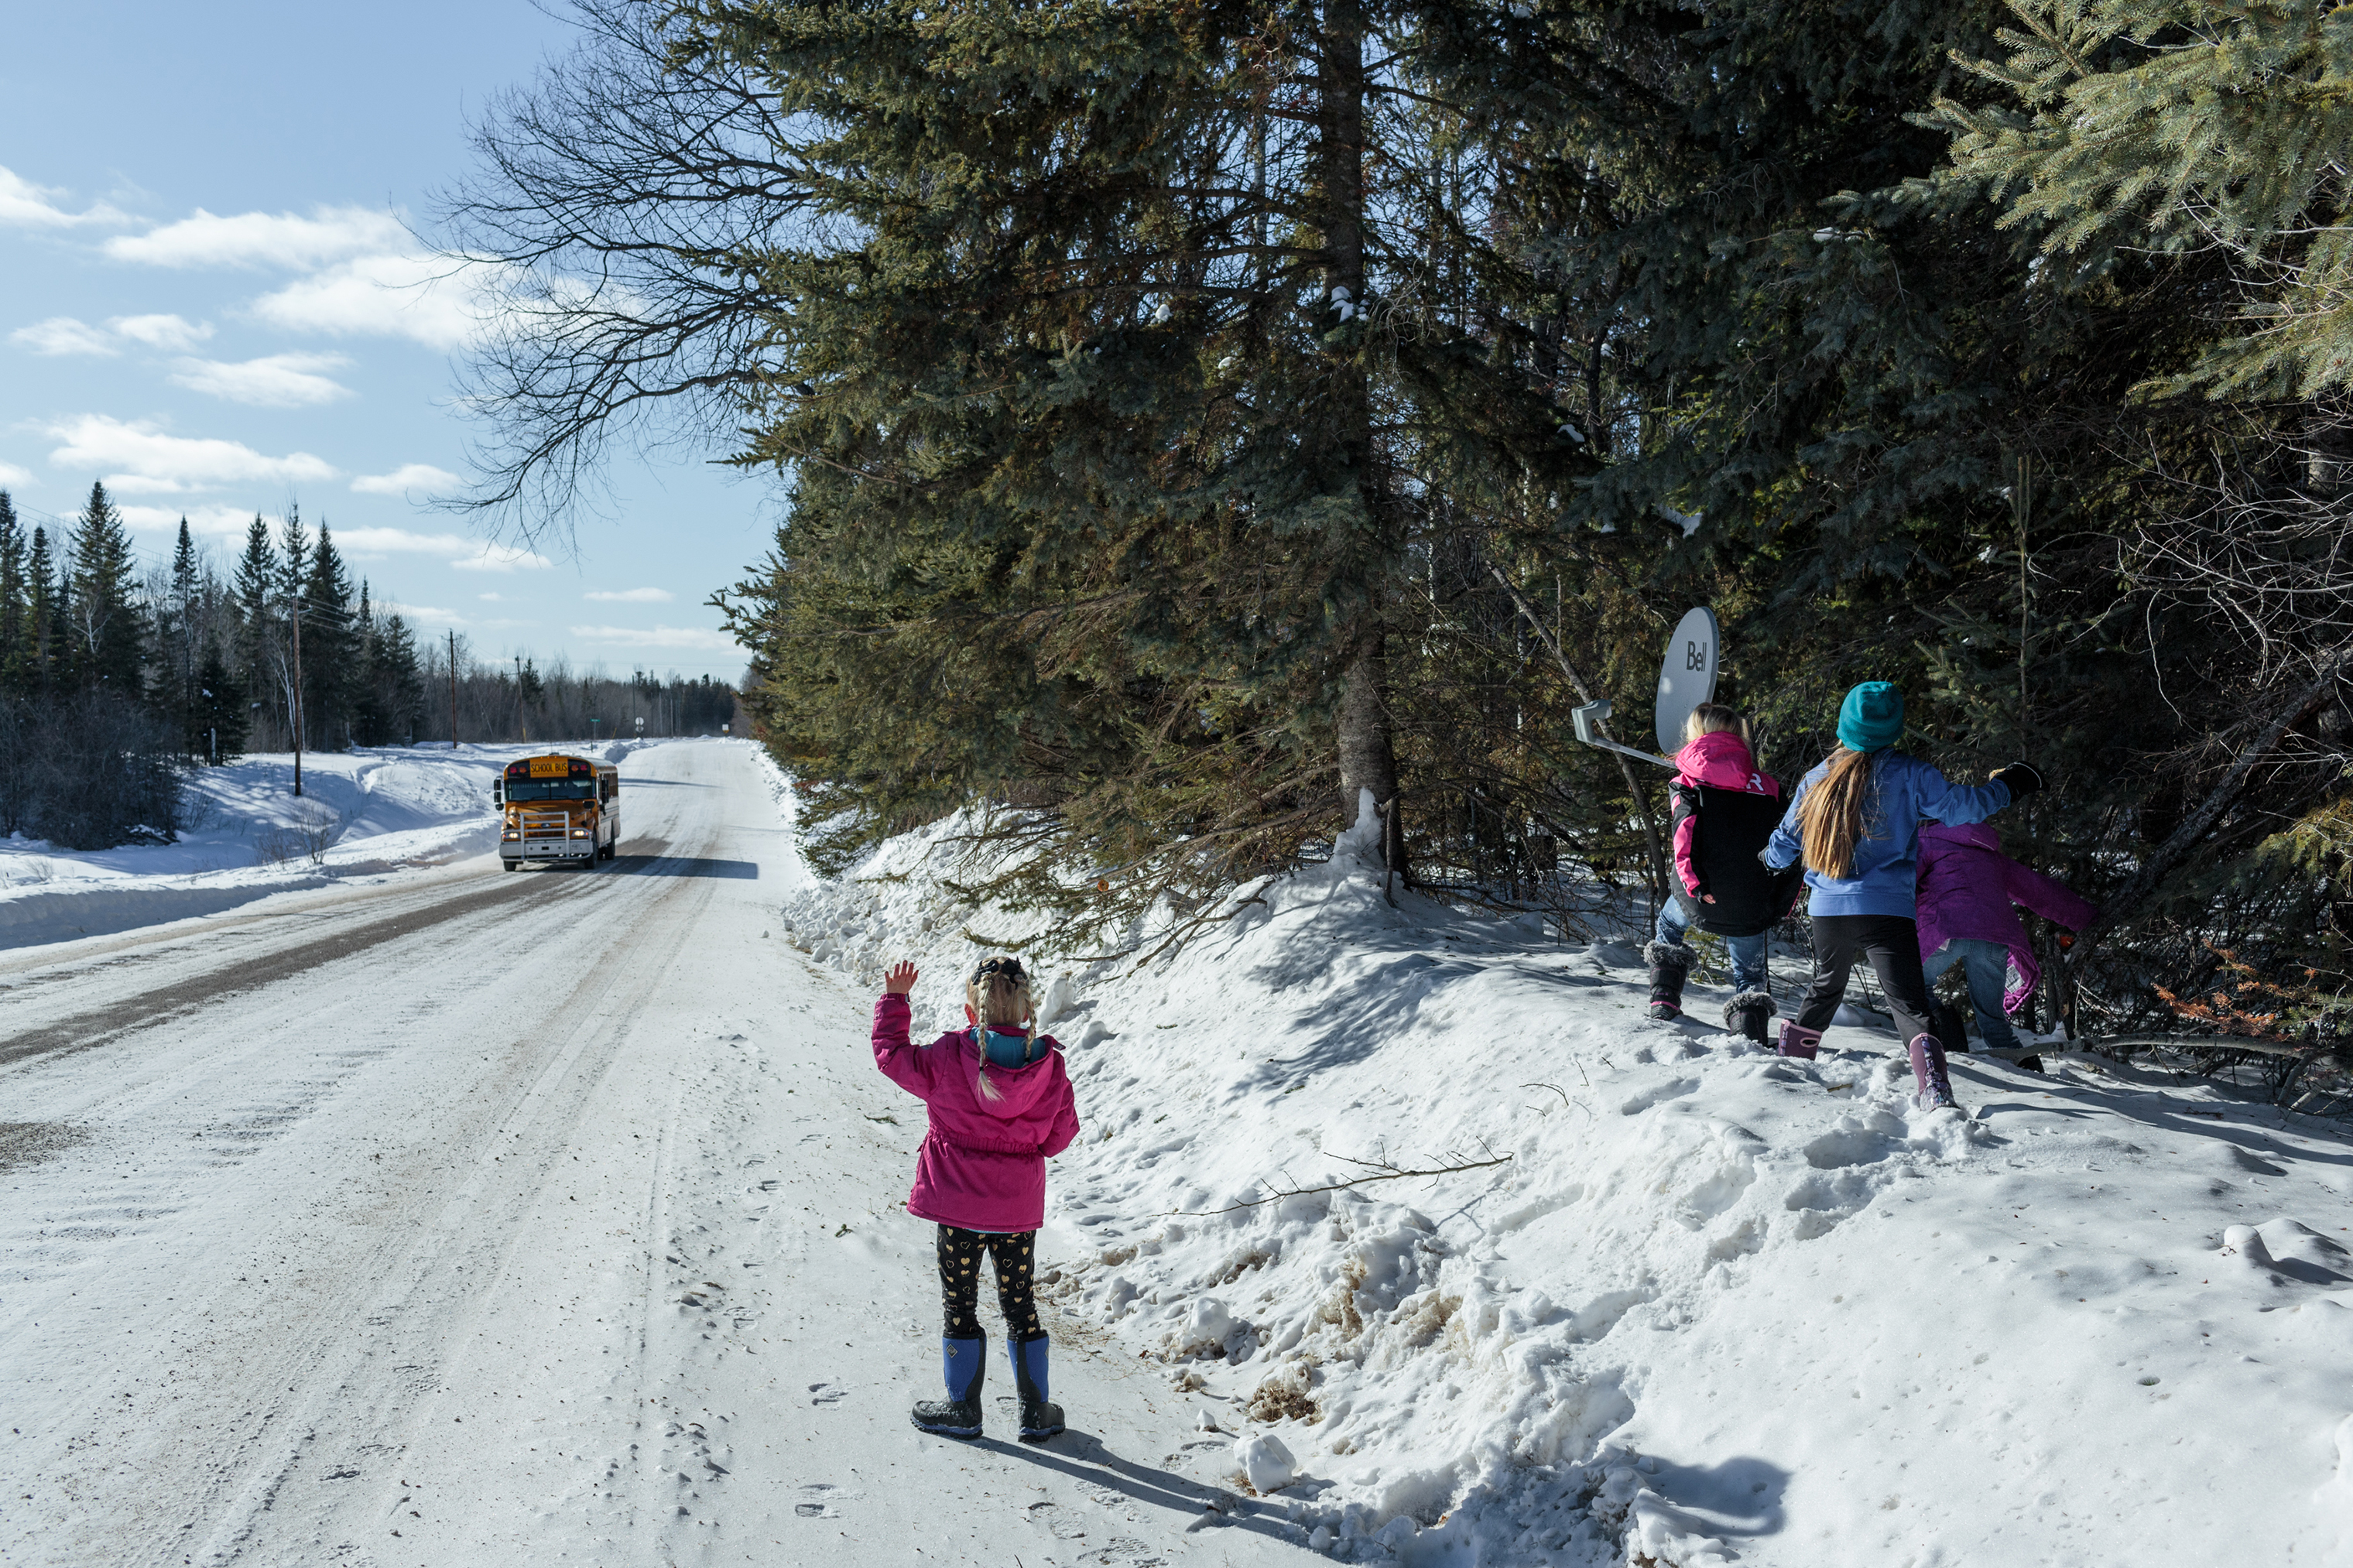 Iris Knight, 6, waves to the local schoolbus. The schoolbus transports students from the Northwest Angle to Warroad - a 2 hour commute with multiple border crossings.